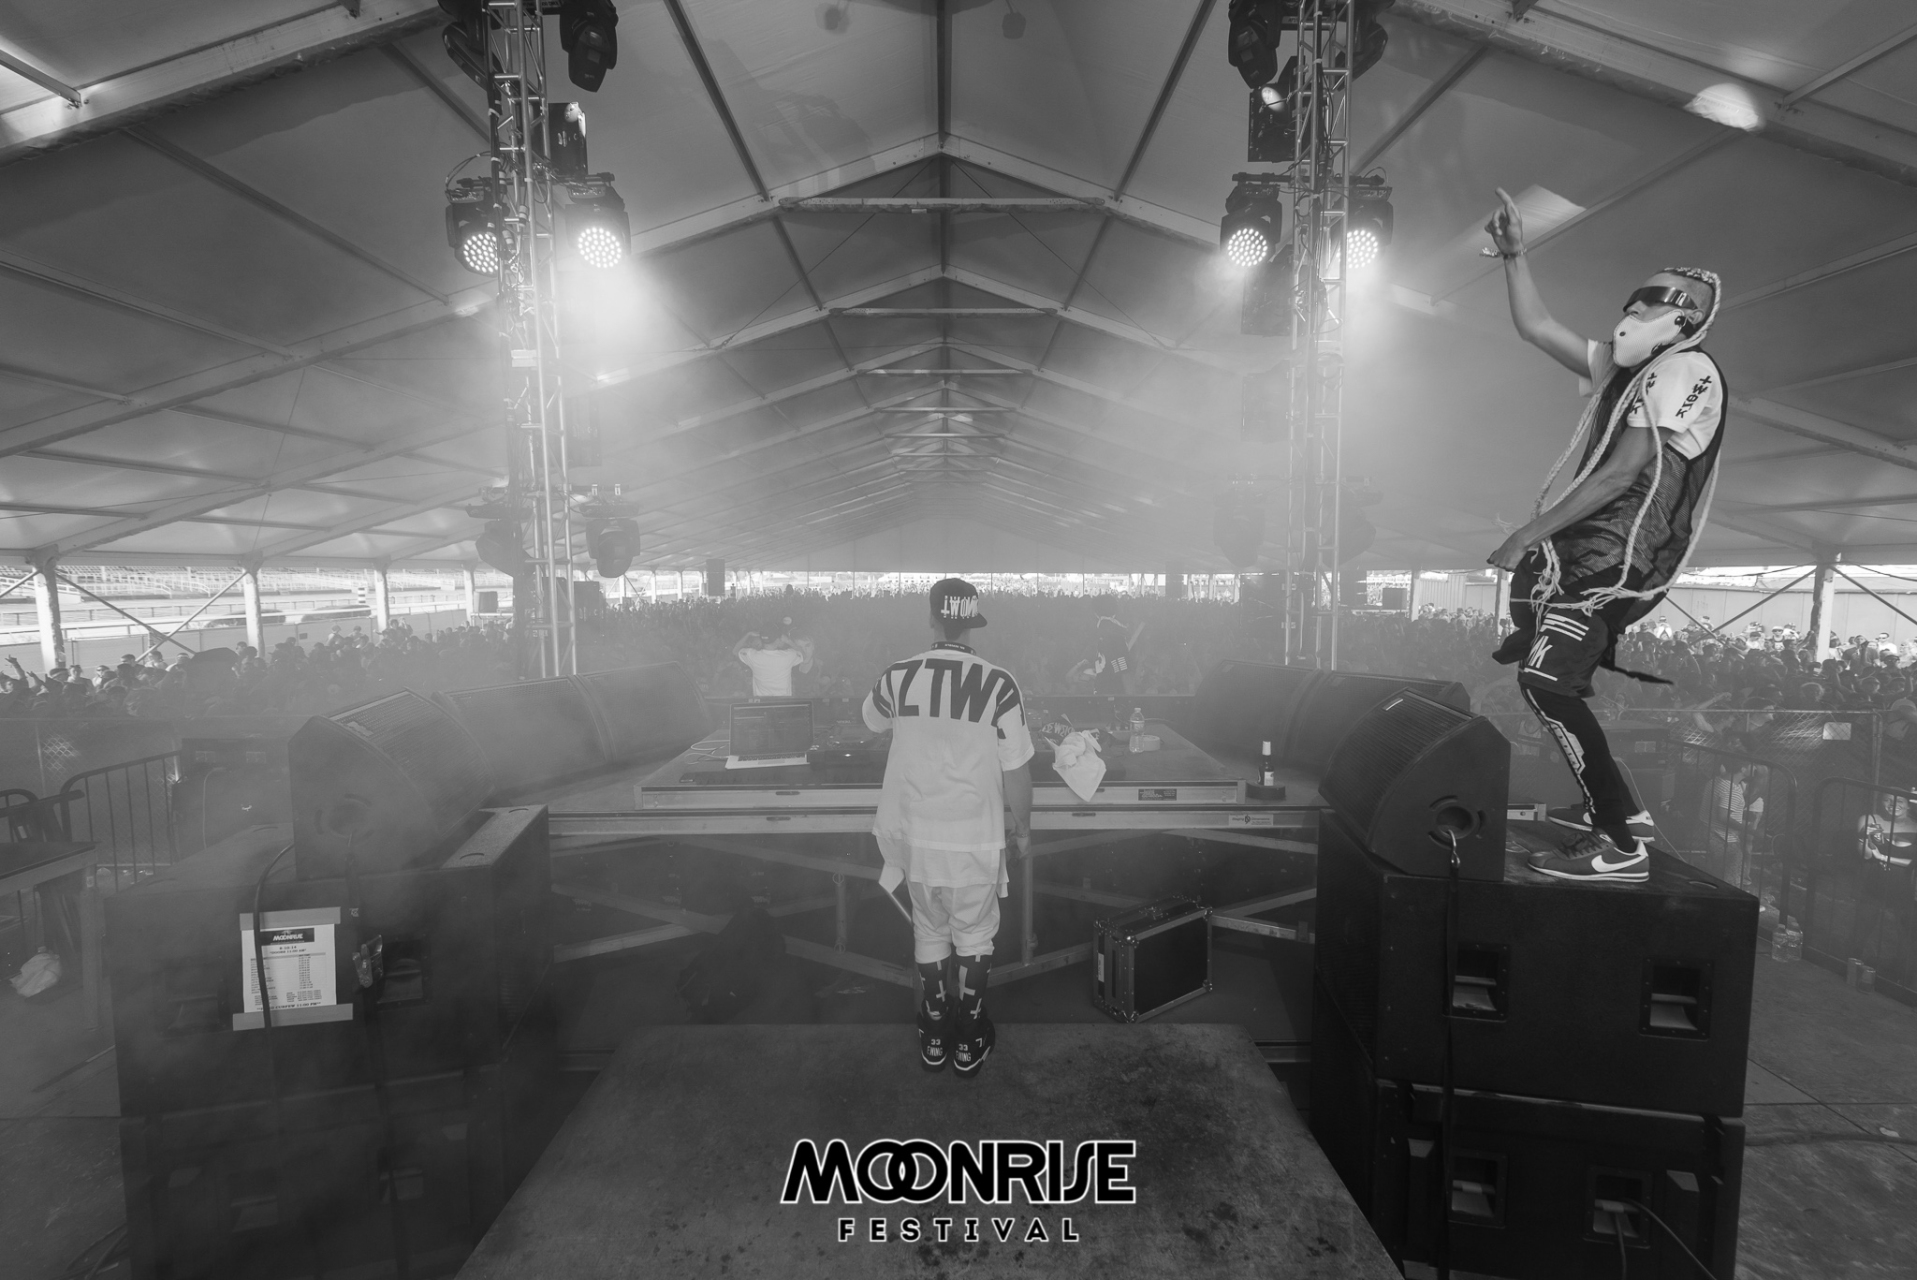 Moonrise_day2-70